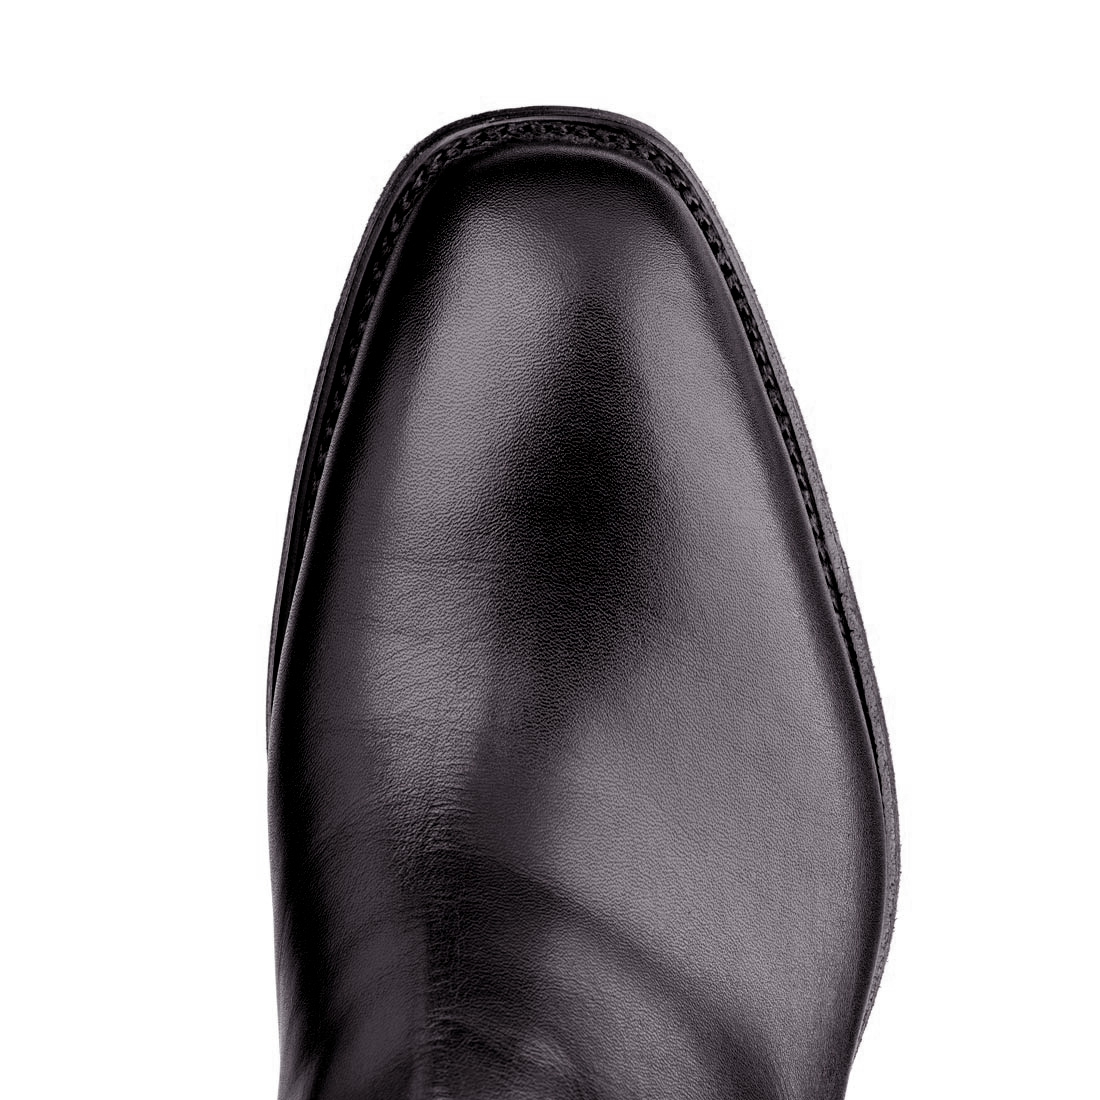 Black RM WIlliams fully retouched boot top view